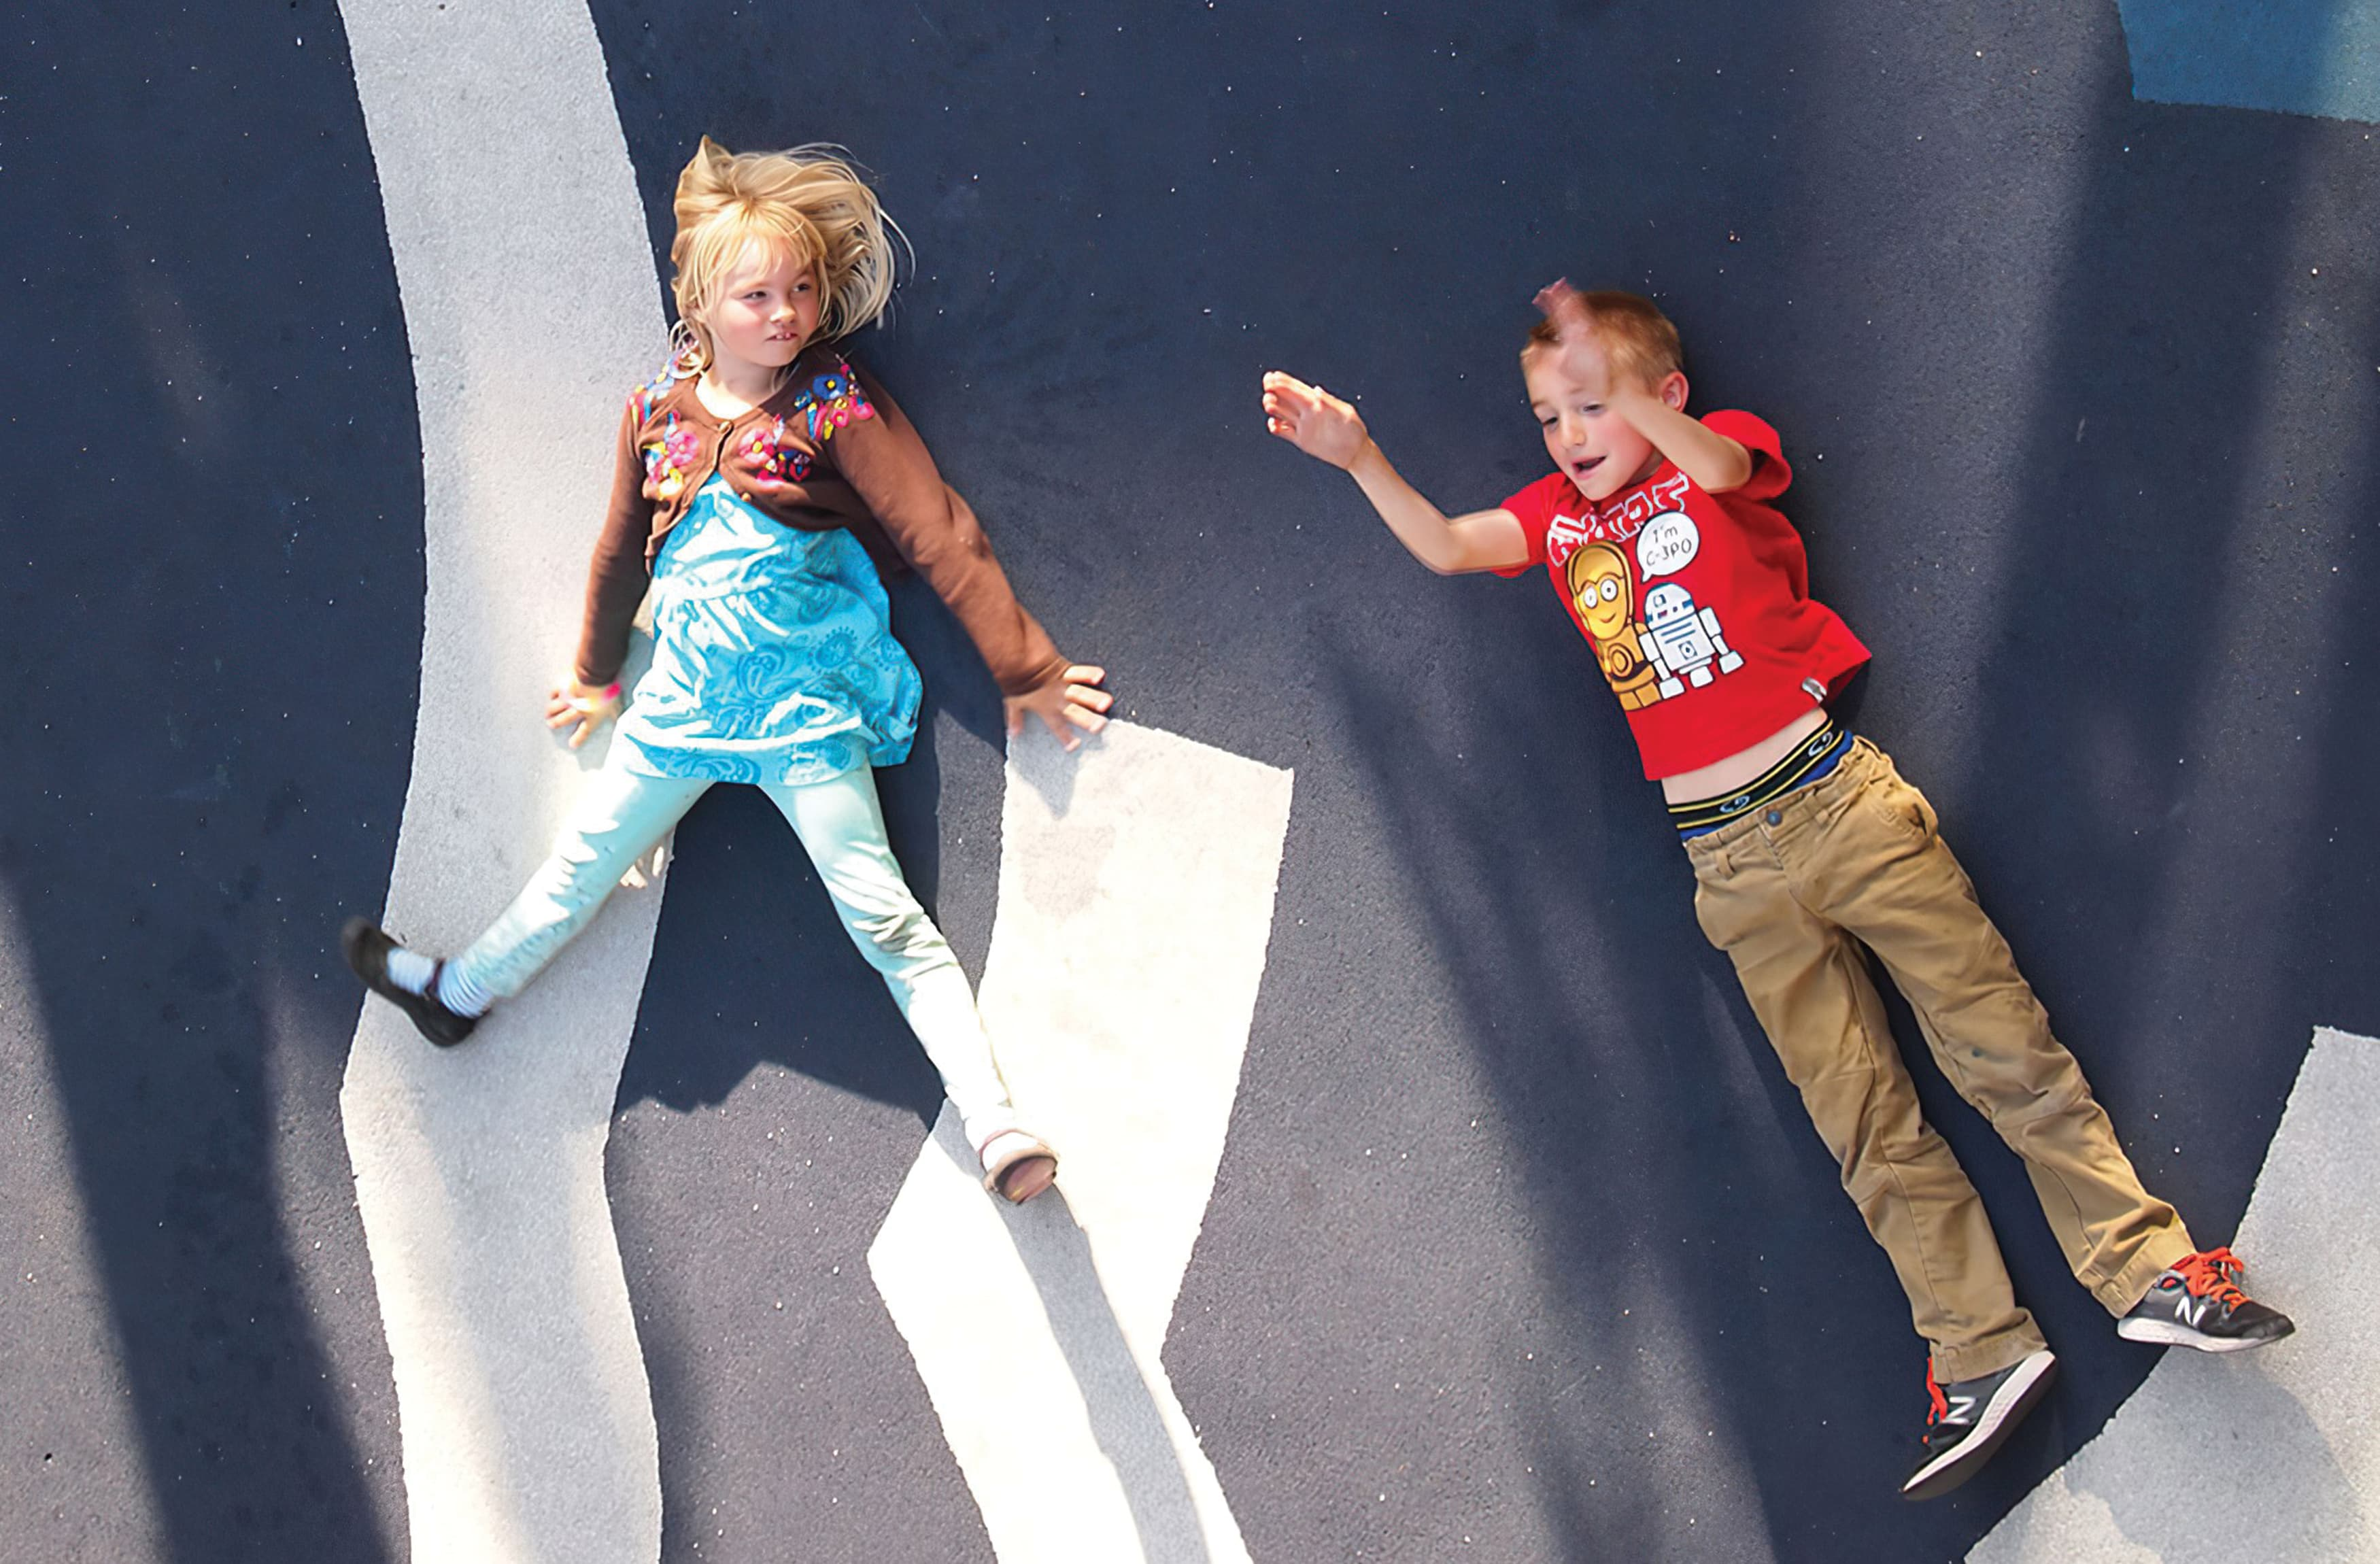 Children playing in an area with painted pavement graphics.